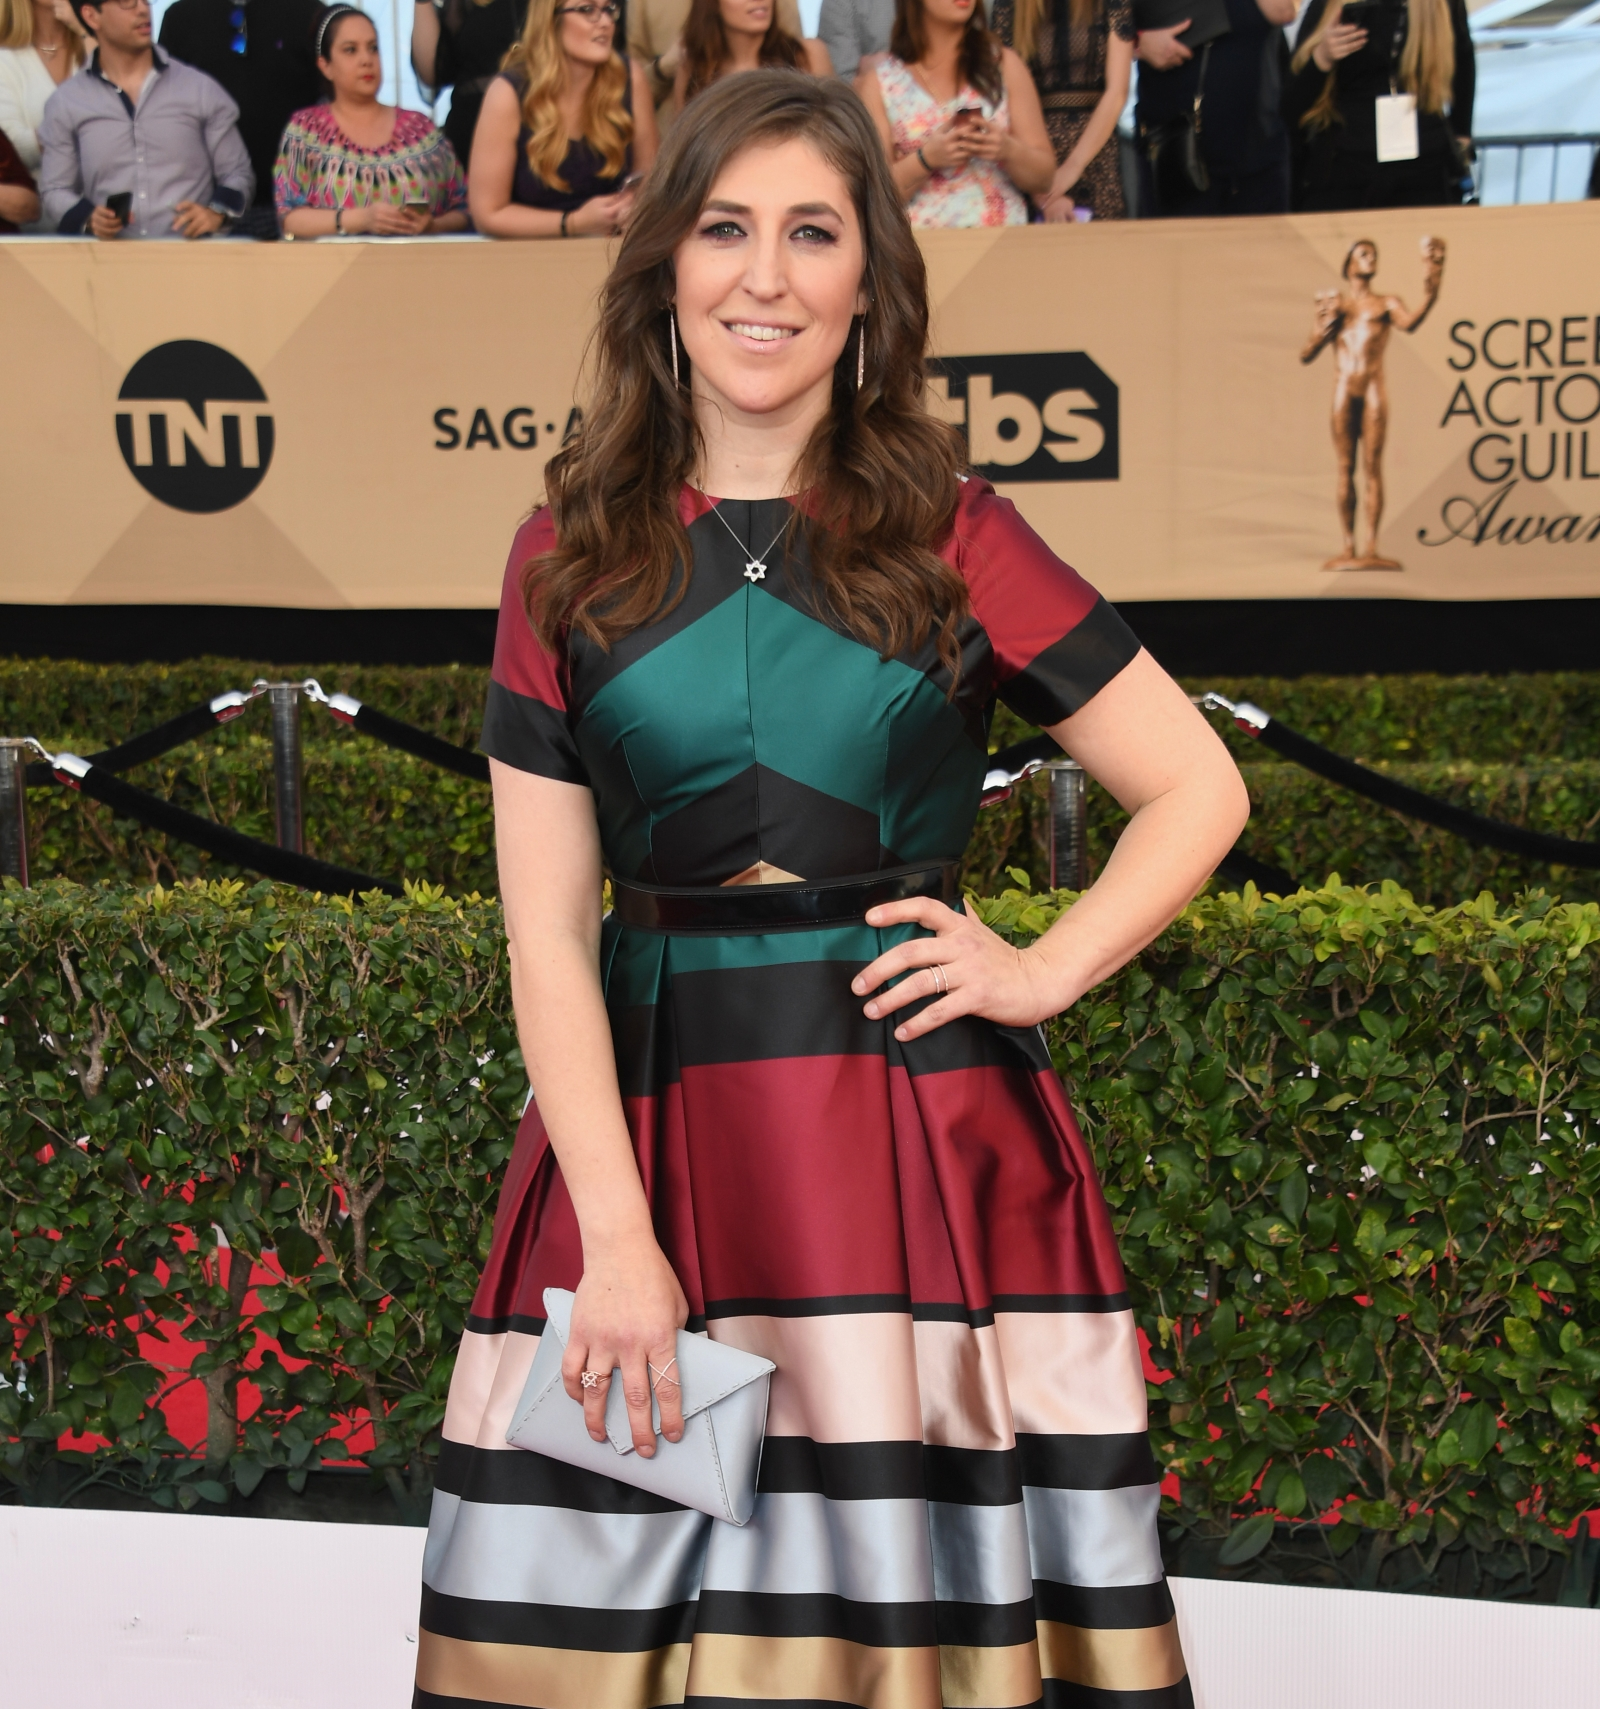 'We will miss you': Big Bang Theory fans react to Mayim Bialik not attending Comic-Con panel